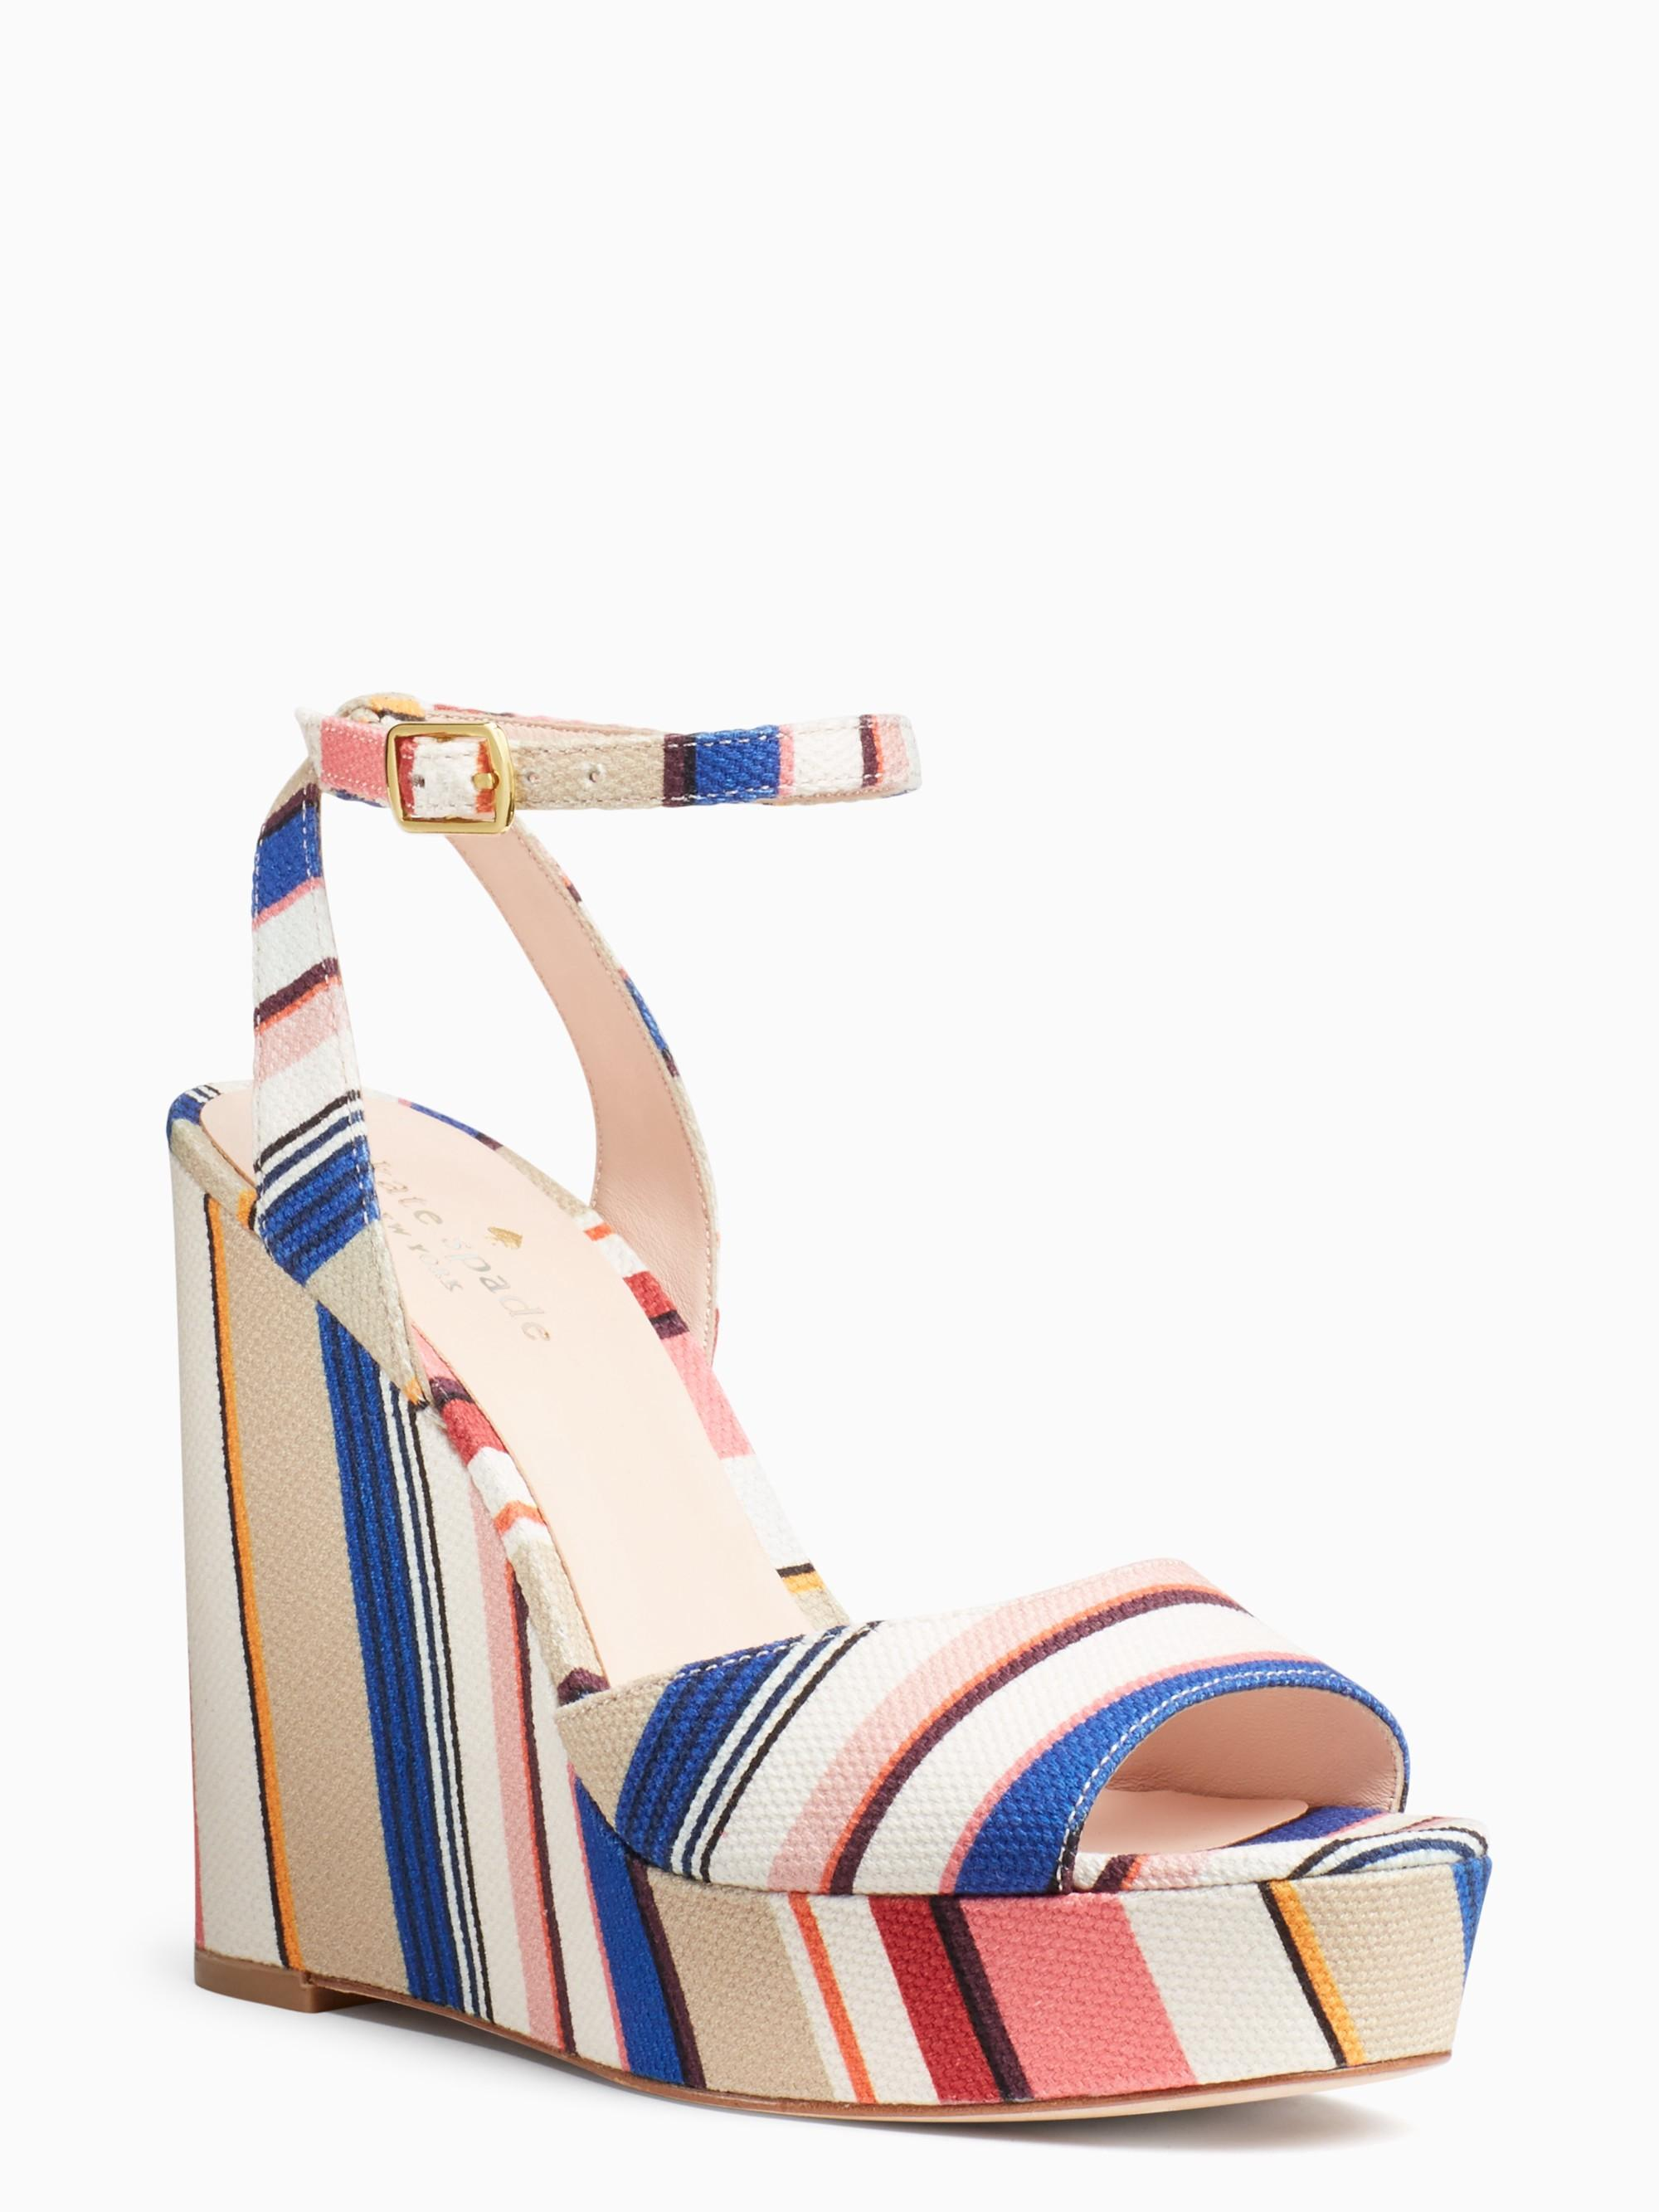 dd8bfd35bd8e Kate Spade Dellie Wedges In Color